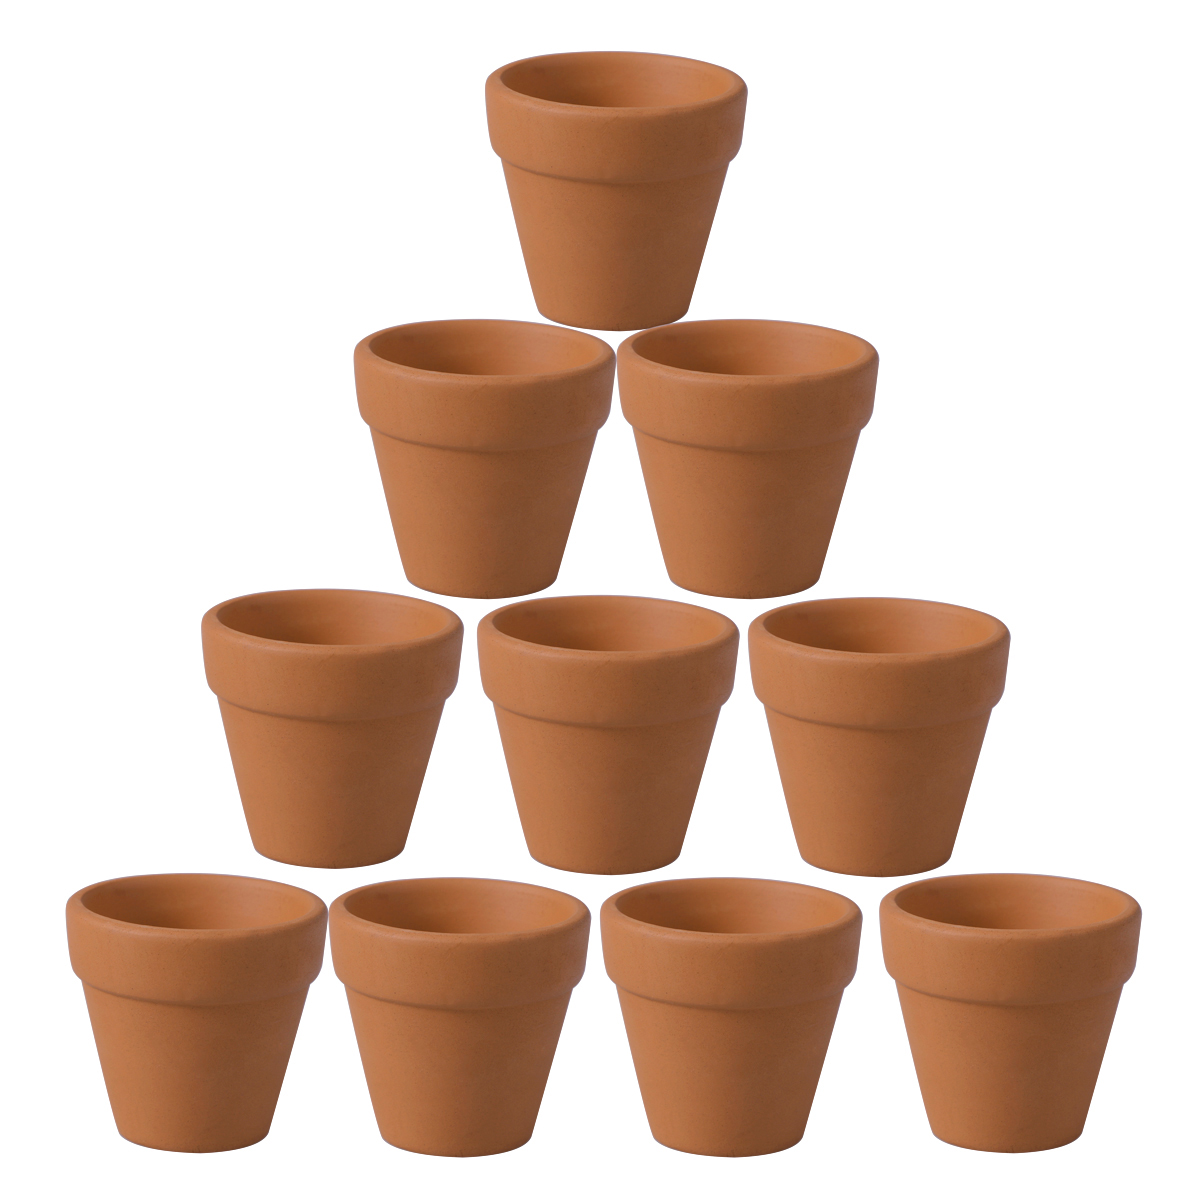 10Pcs 4.5x4cm Mini Terracotta Pot Clay Ceramic Pottery Planter Cactus Flower Pots Succulent Nursery Pots Great For Plants Crafts